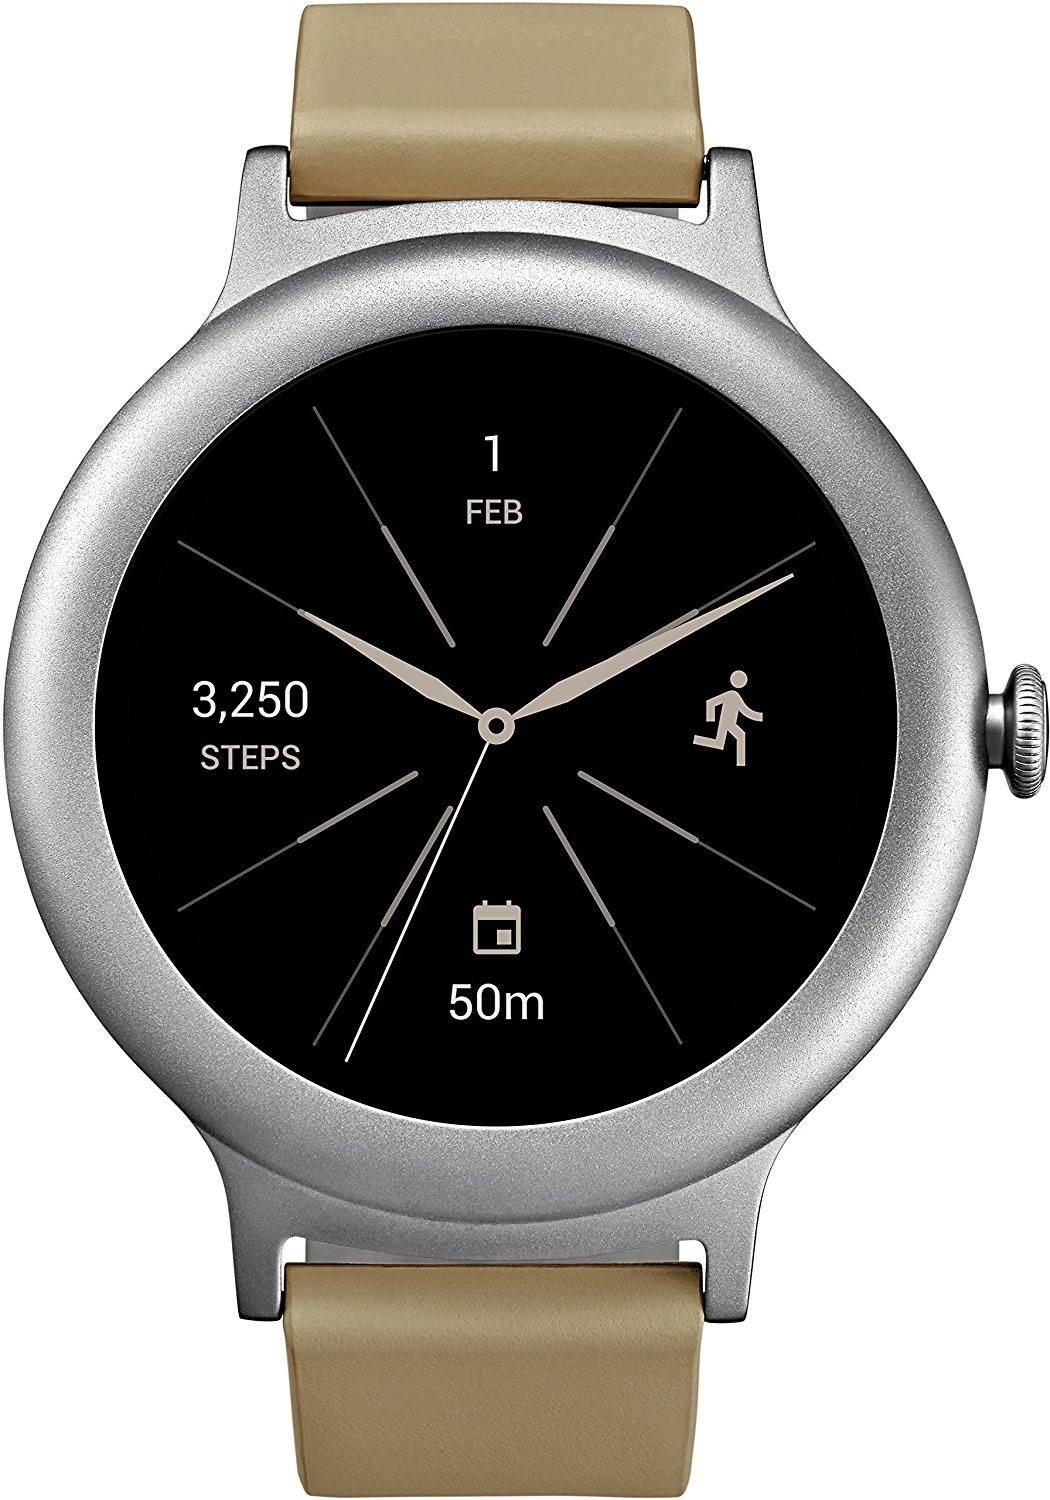 Recensione LG Watch Style